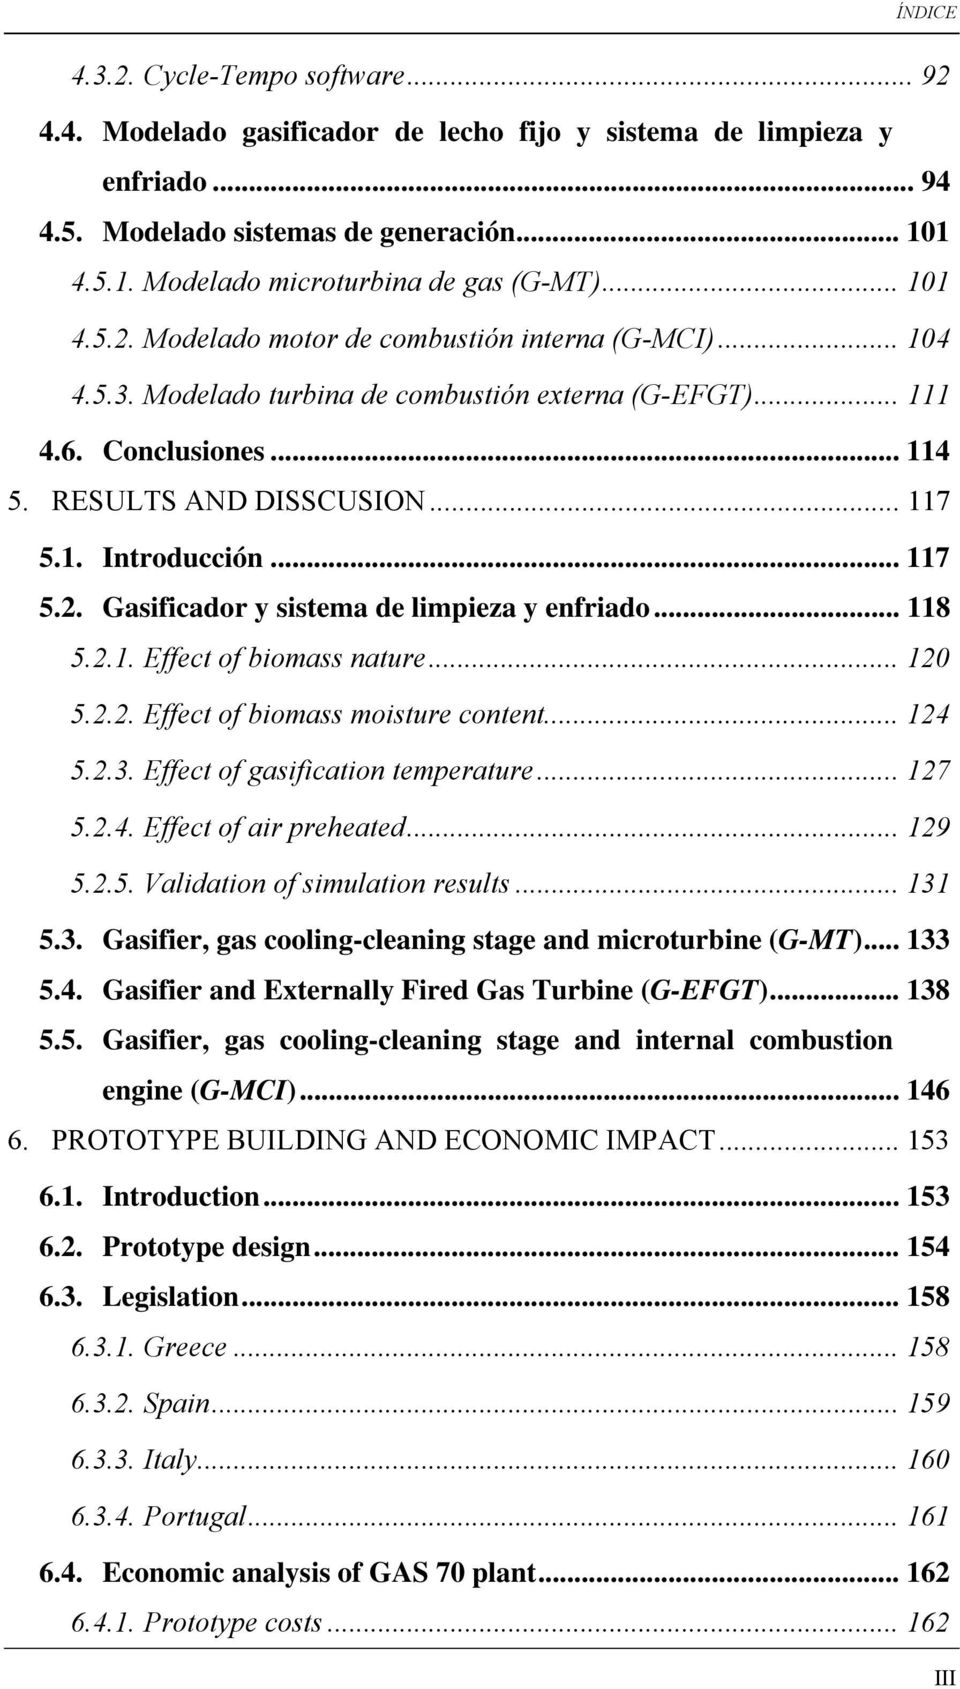 .. 117 5.2. Gasificador y sistema de limpieza y enfriado... 118 5.2.1. Effect of biomass nature... 120 5.2.2. Effect of biomass moisture content... 124 5.2.3. Effect of gasification temperature.